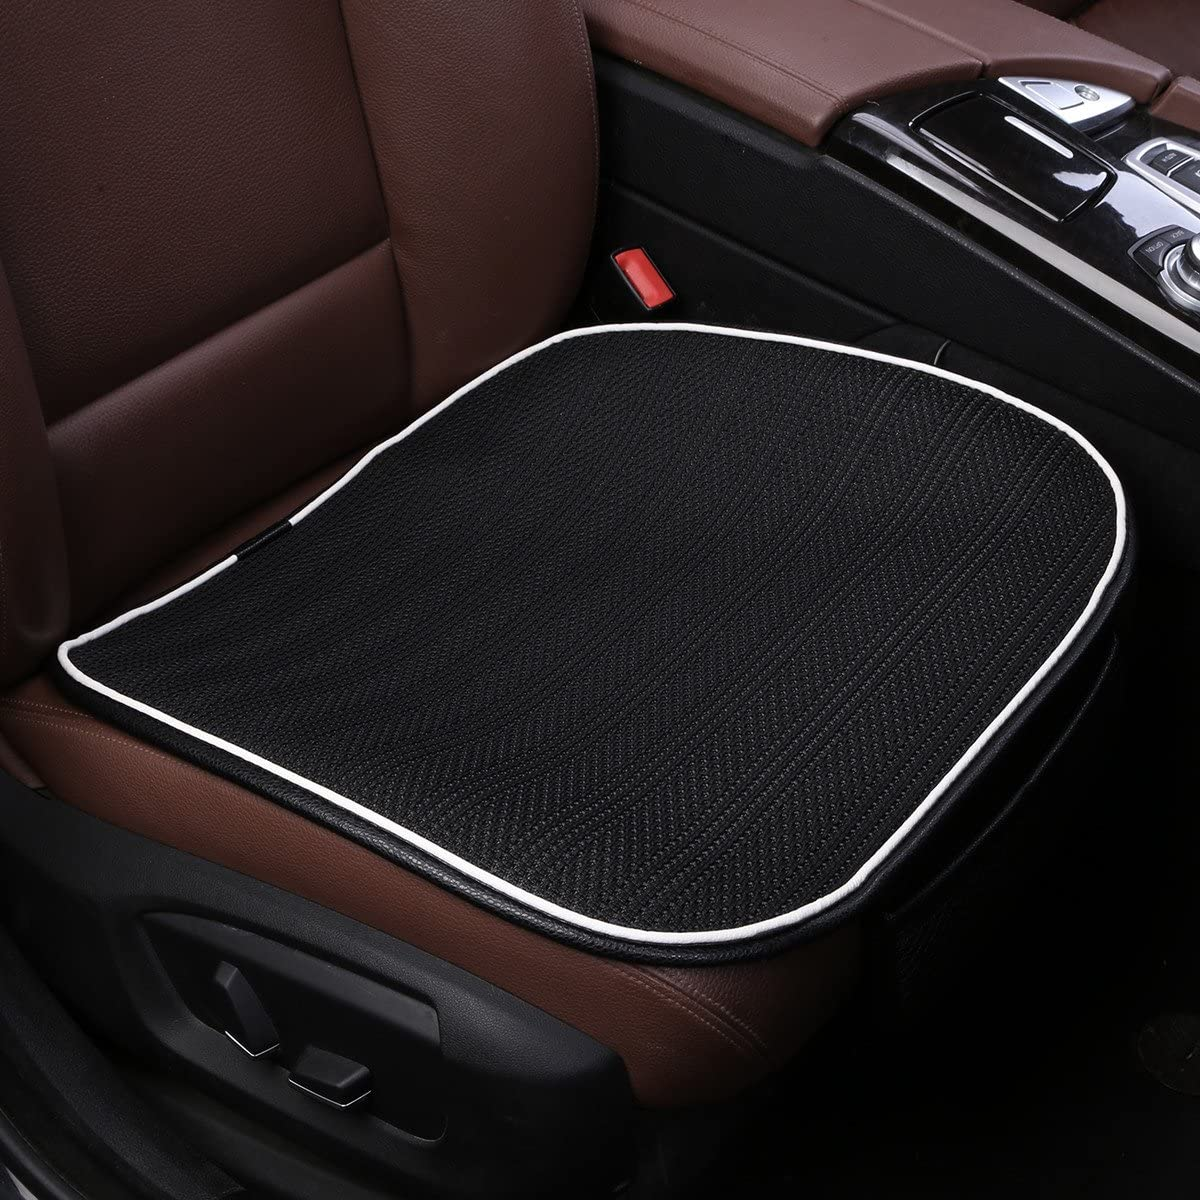 Car Seat Cushion,Breathable Comfort Car Drivers Seat Covers, Universal Car Interior Seat Protector Mat Pad Fit Most Car, Truck, Suv, or Van(Black Front Seat)